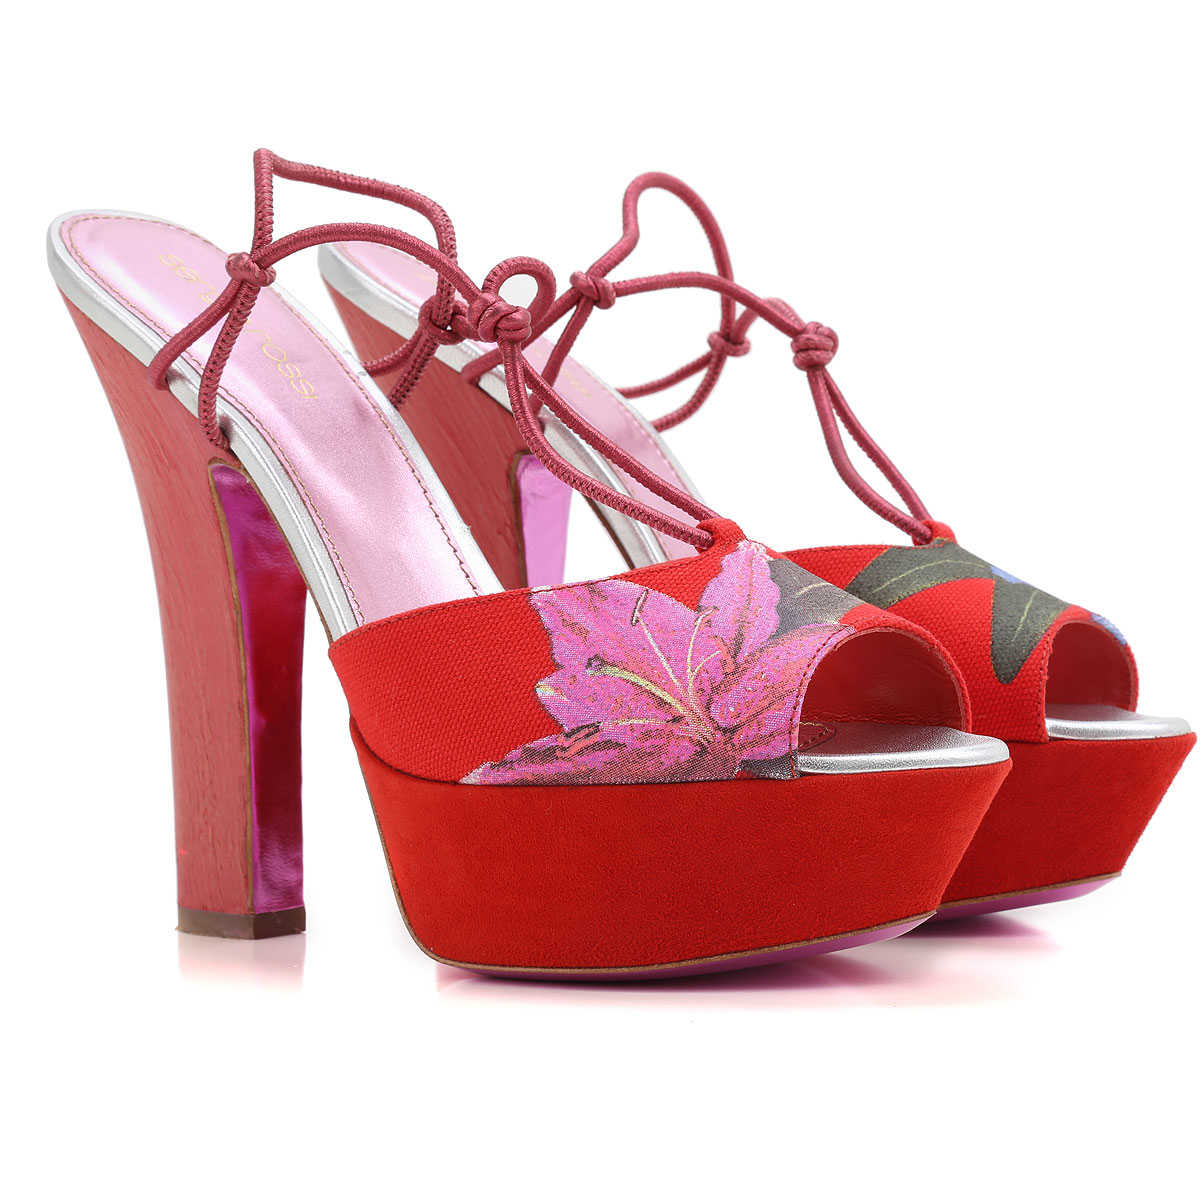 Sergio Rossi Wedges for Women On Sale in Outlet Red SE - GOOFASH